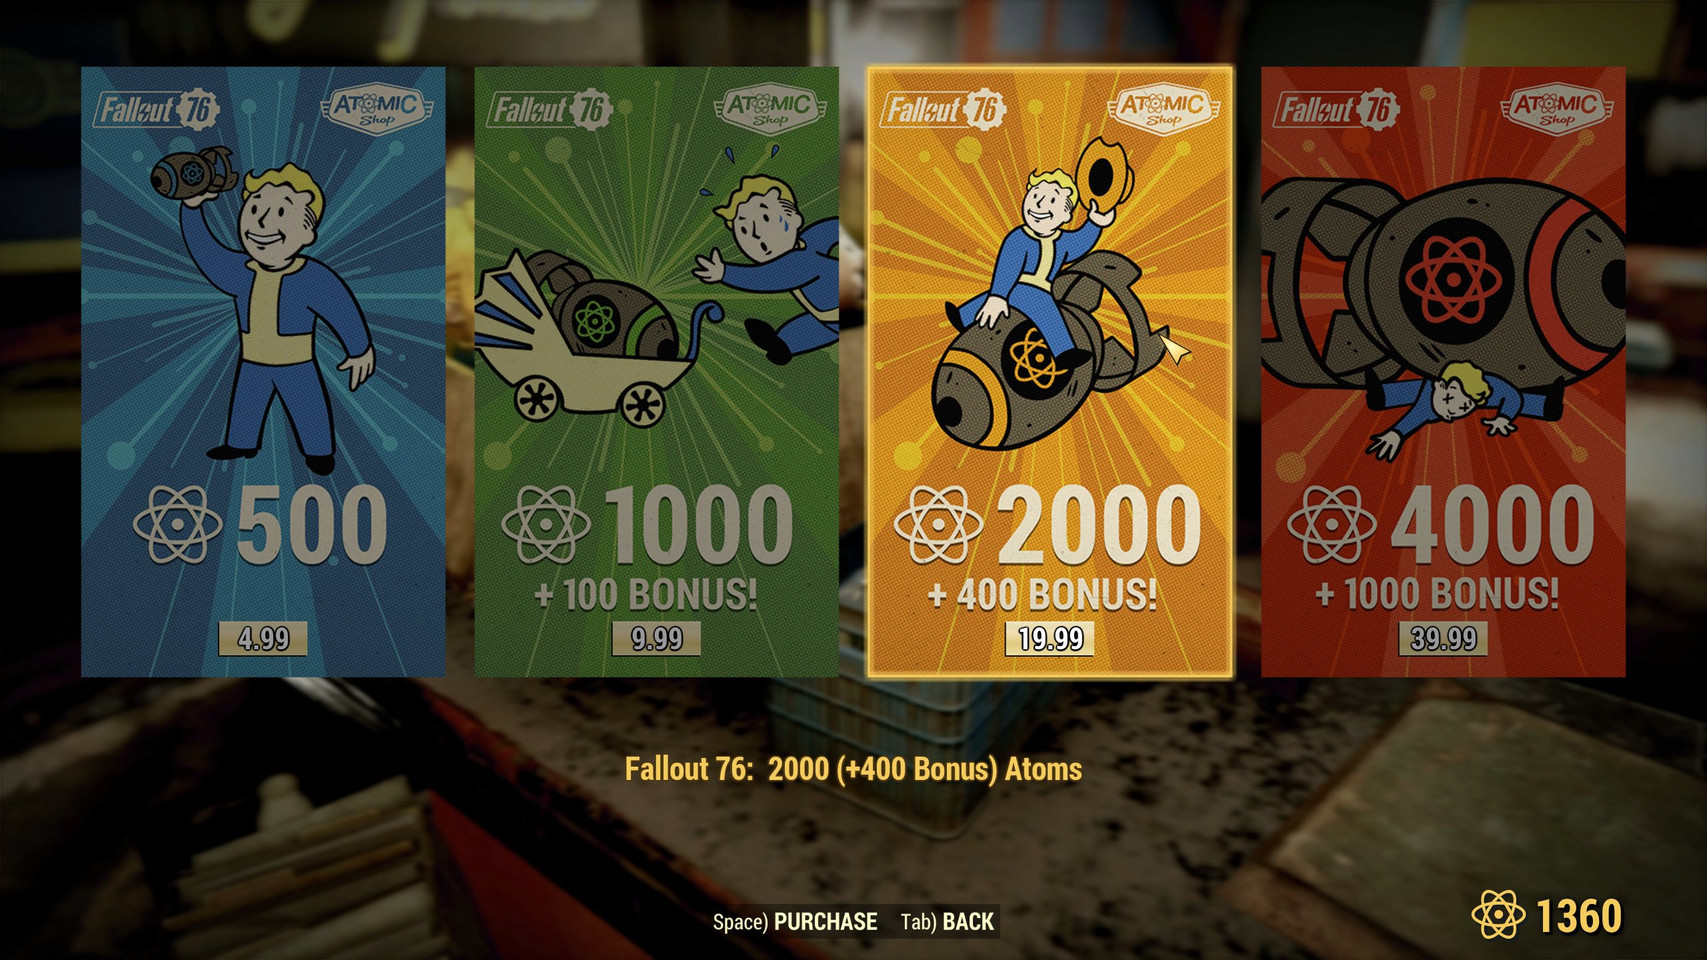 Fallout 76: Atom Shop Prices Reach New Level of Absurdity | TechPowerUp